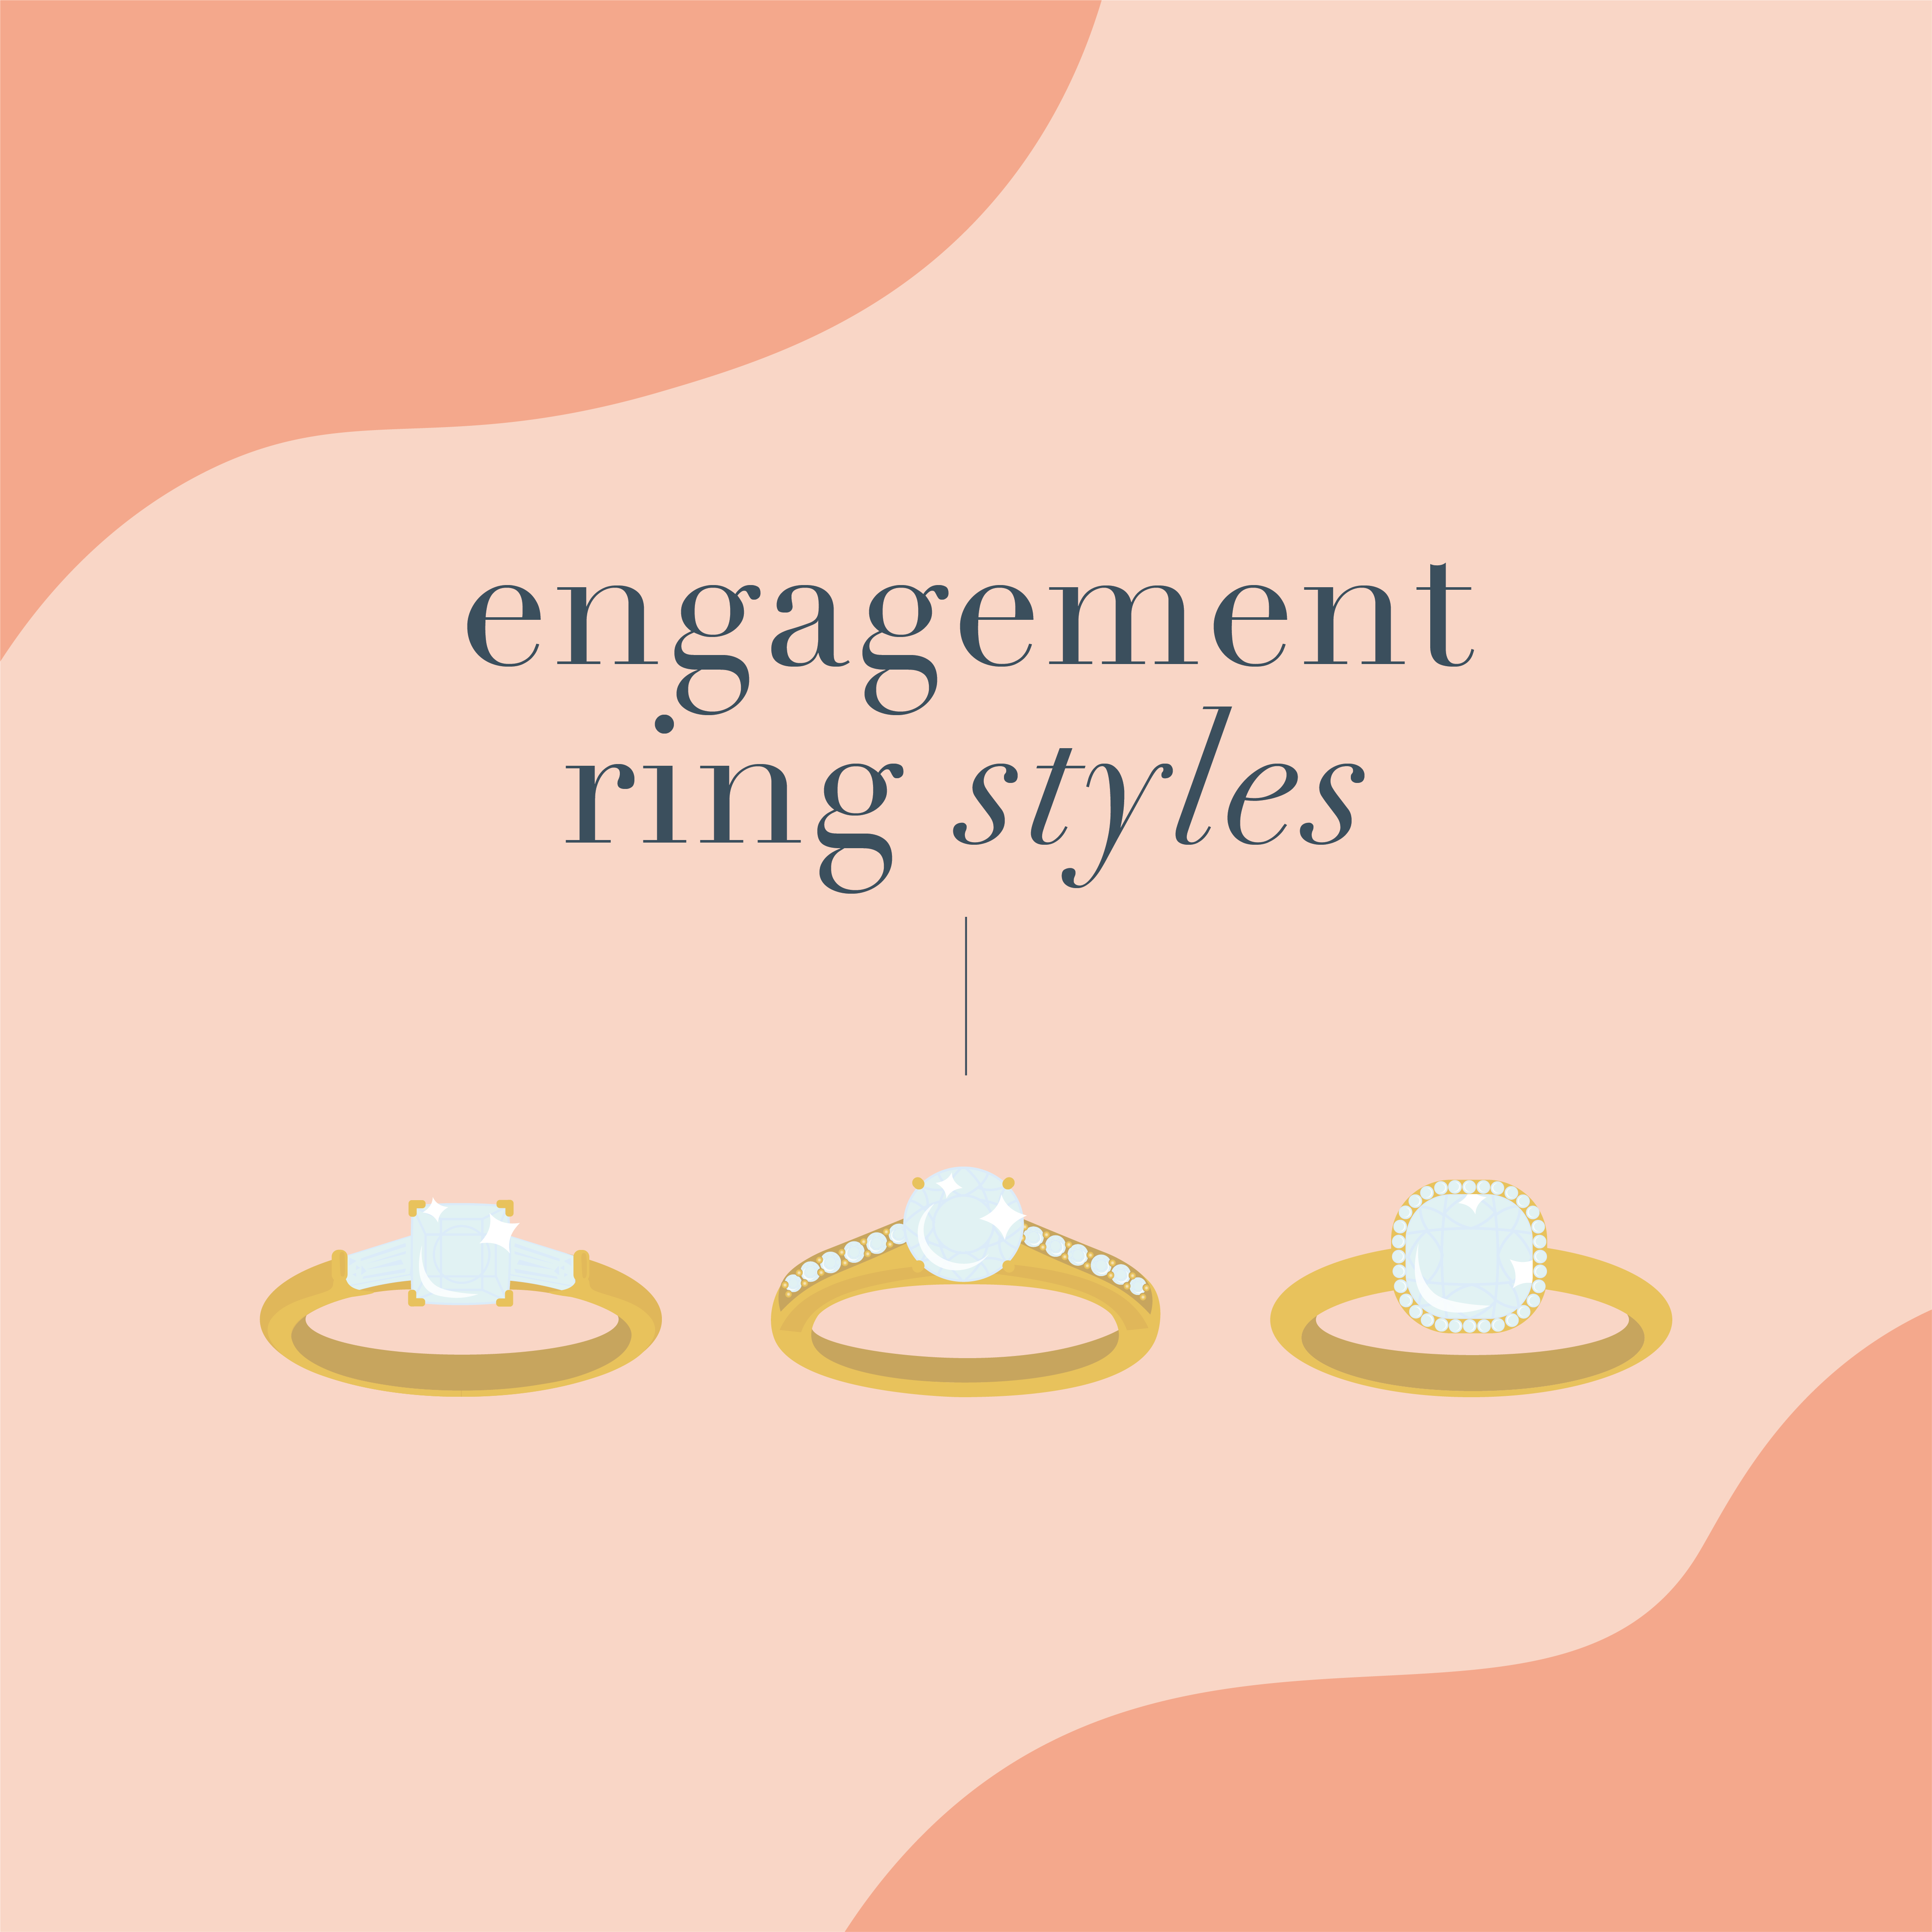 EngagementRingStyles_1_Cover 1